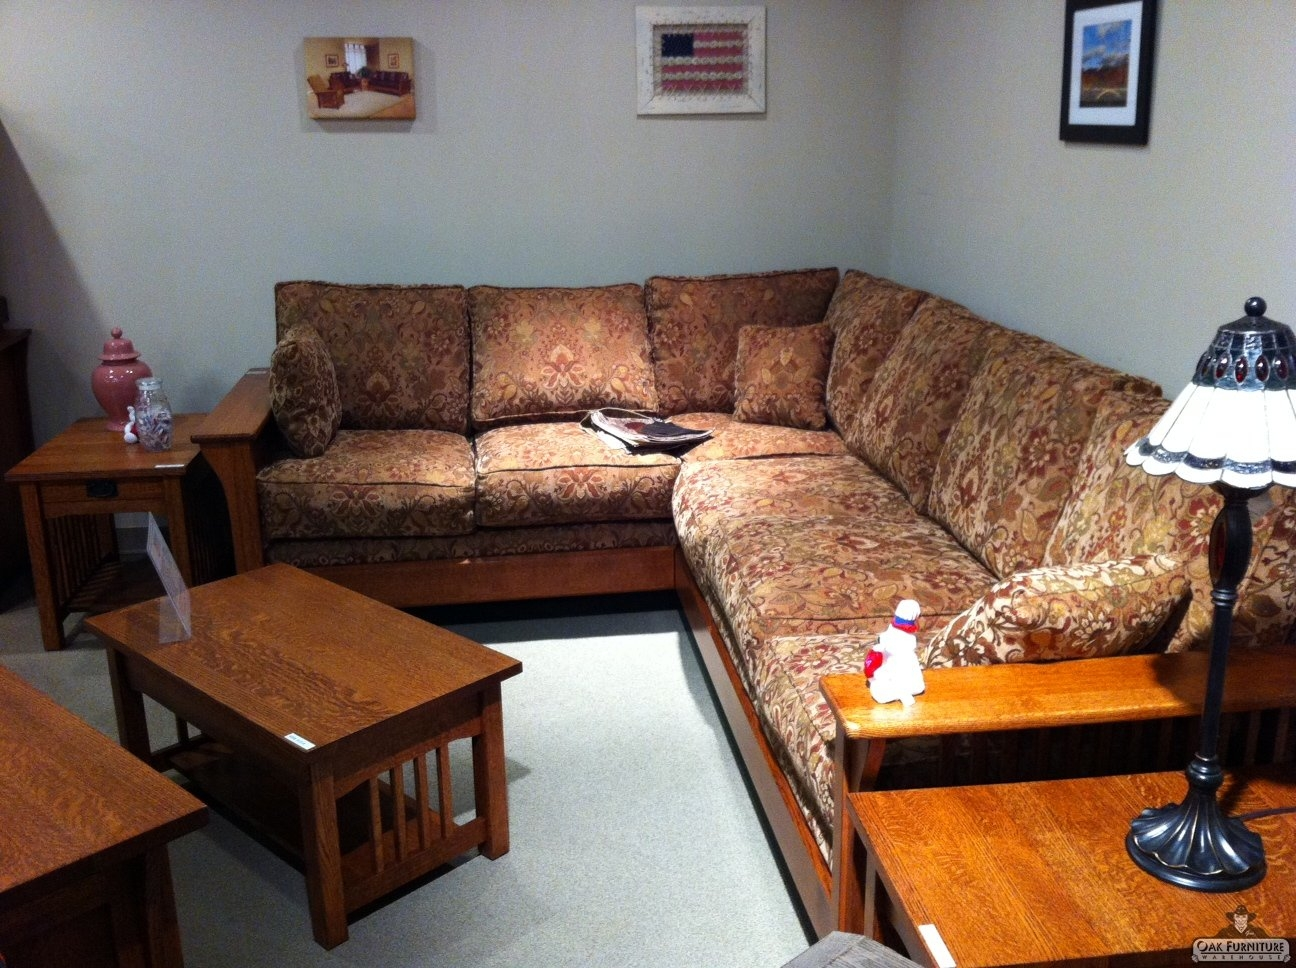 52 Craftsman Style Sofa Voorhees Craftsman Mission Oak Furniture Inside Craftsman Sectional Sofa (Image 1 of 15)